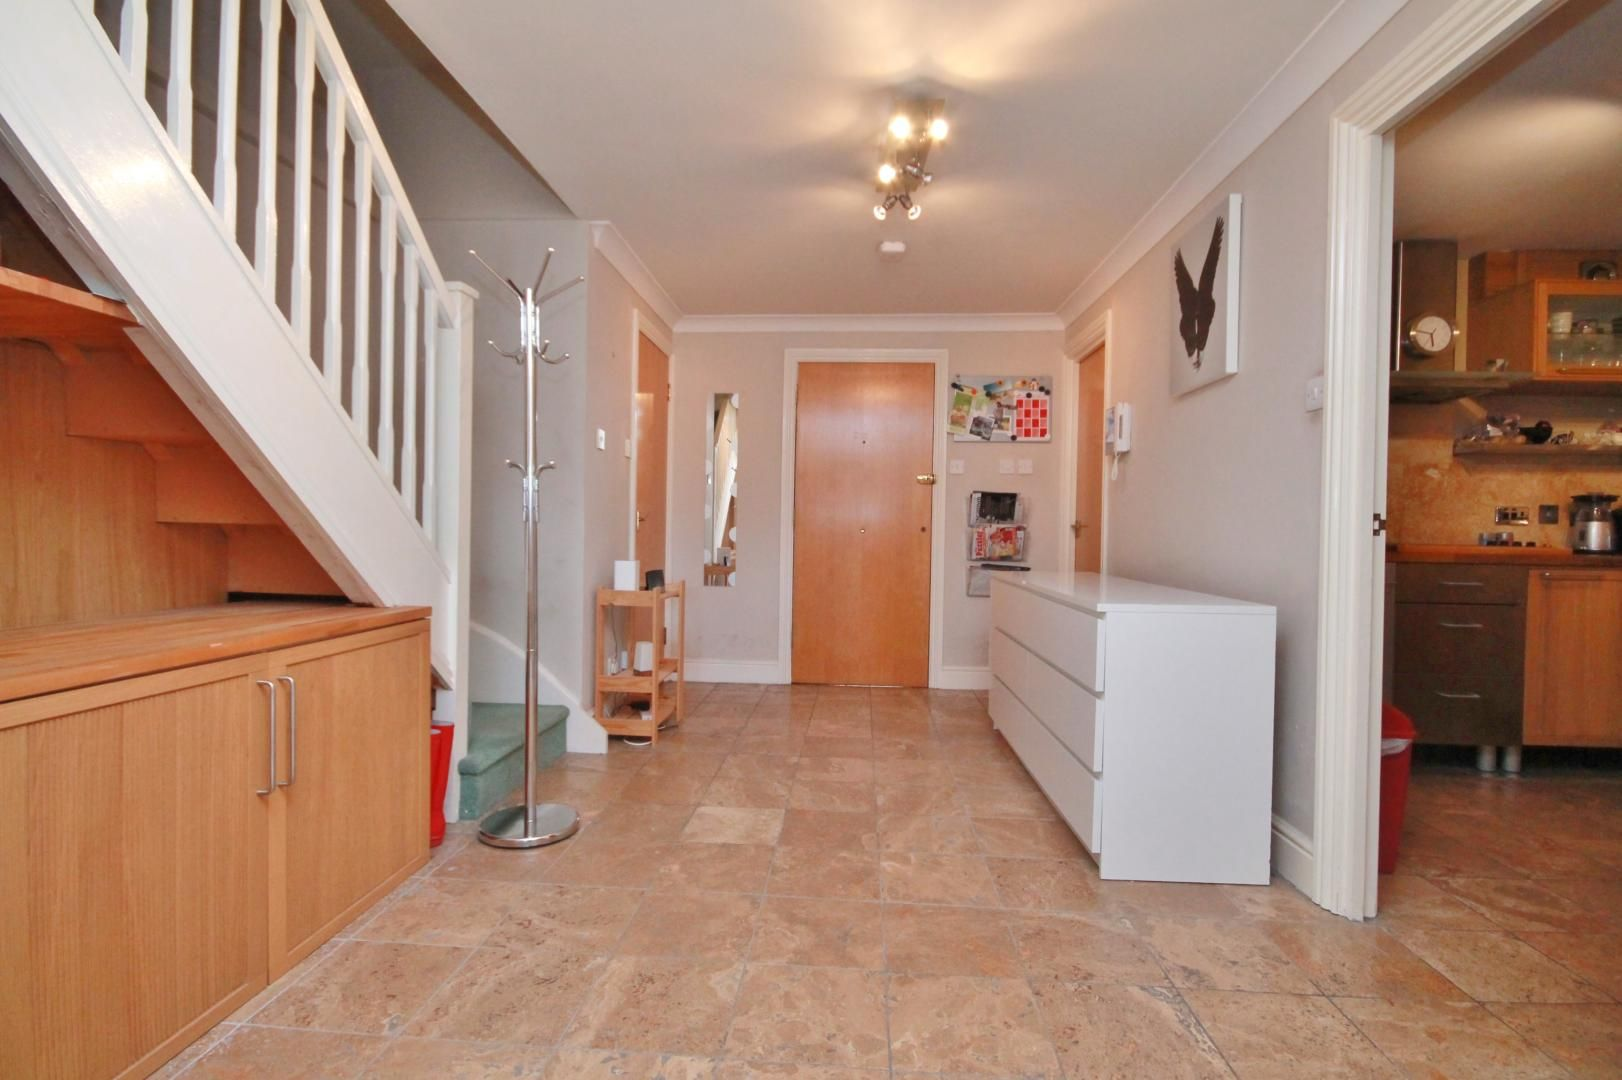 2 bed flat for sale in Taffrail House, E14